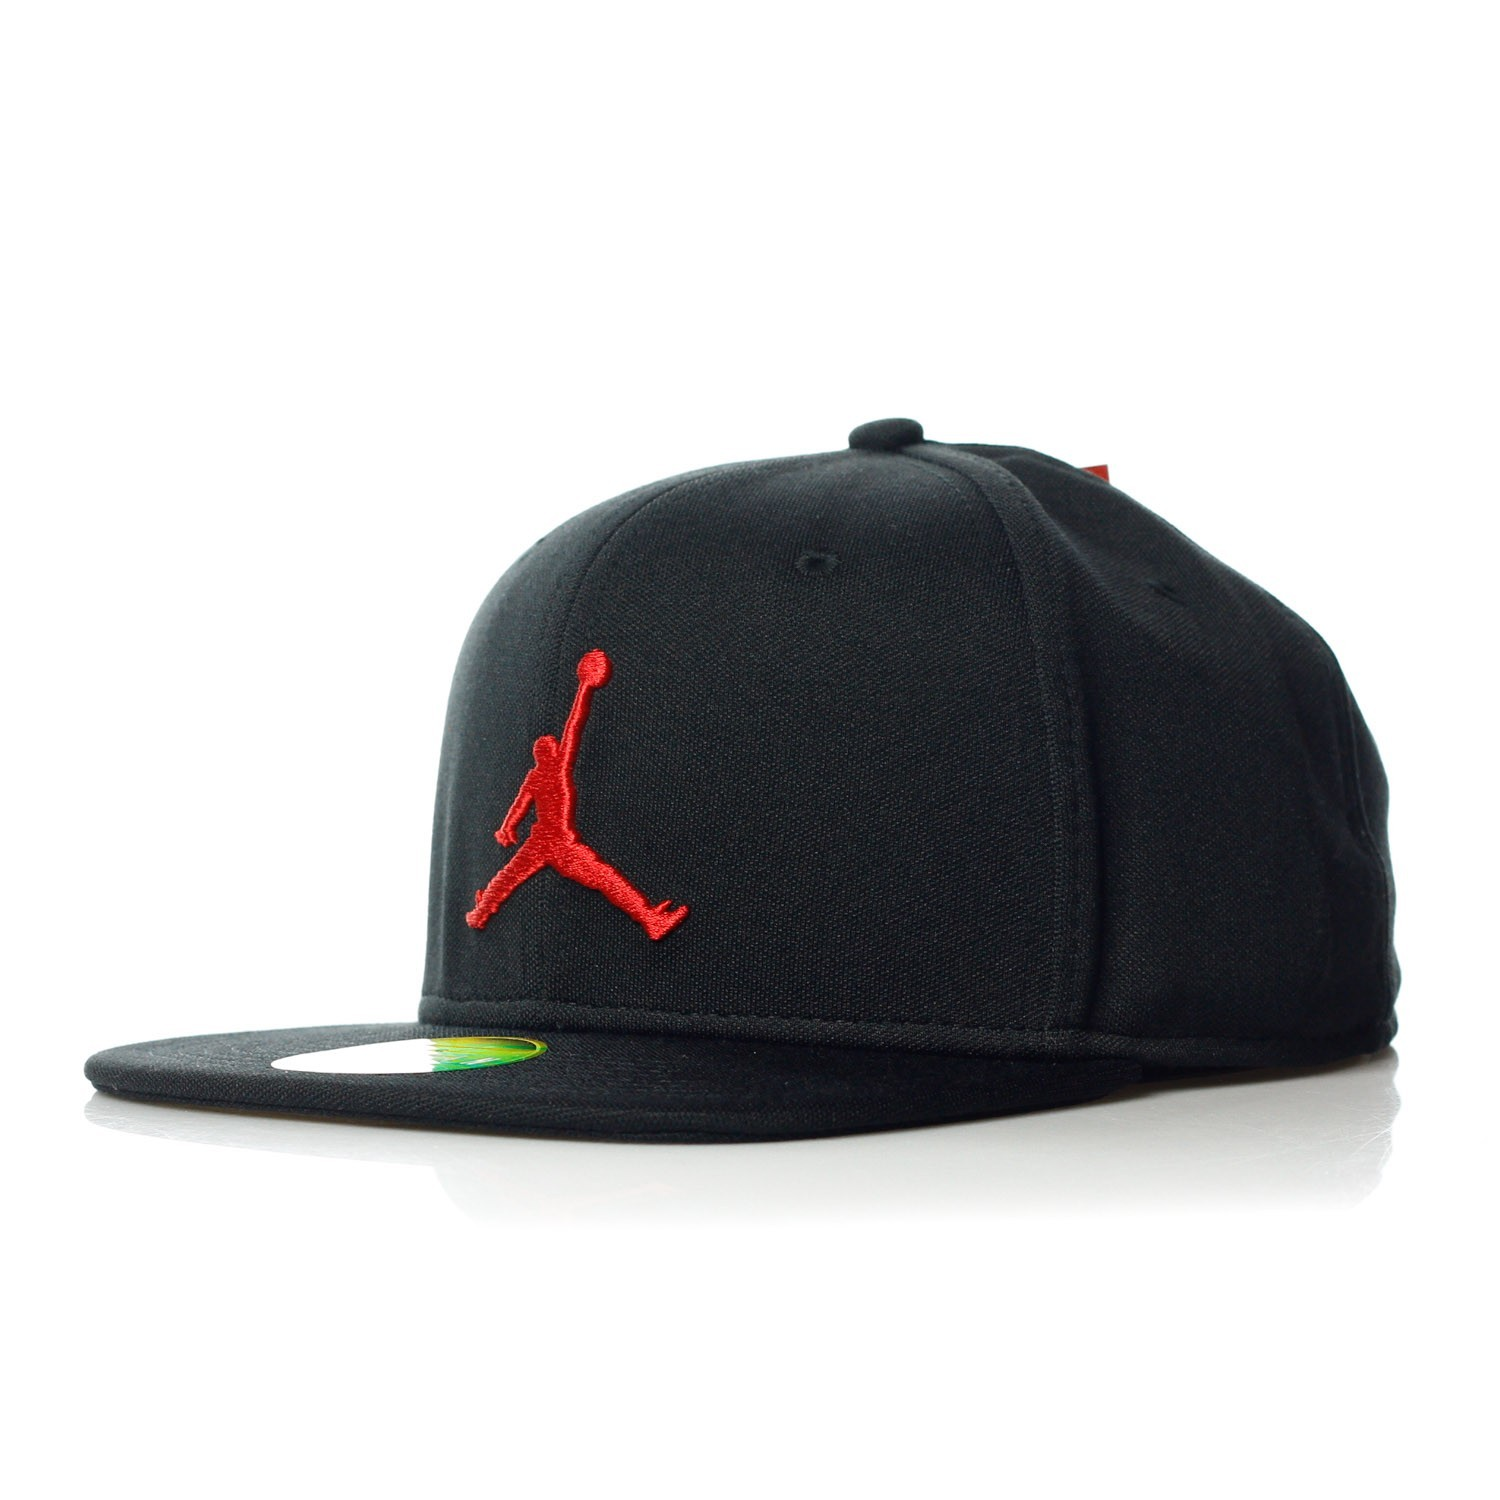 758a36c7 CAPPELLO SNAPBACK JUMPMAN SNAPBACK BLACK/GYM RED ...